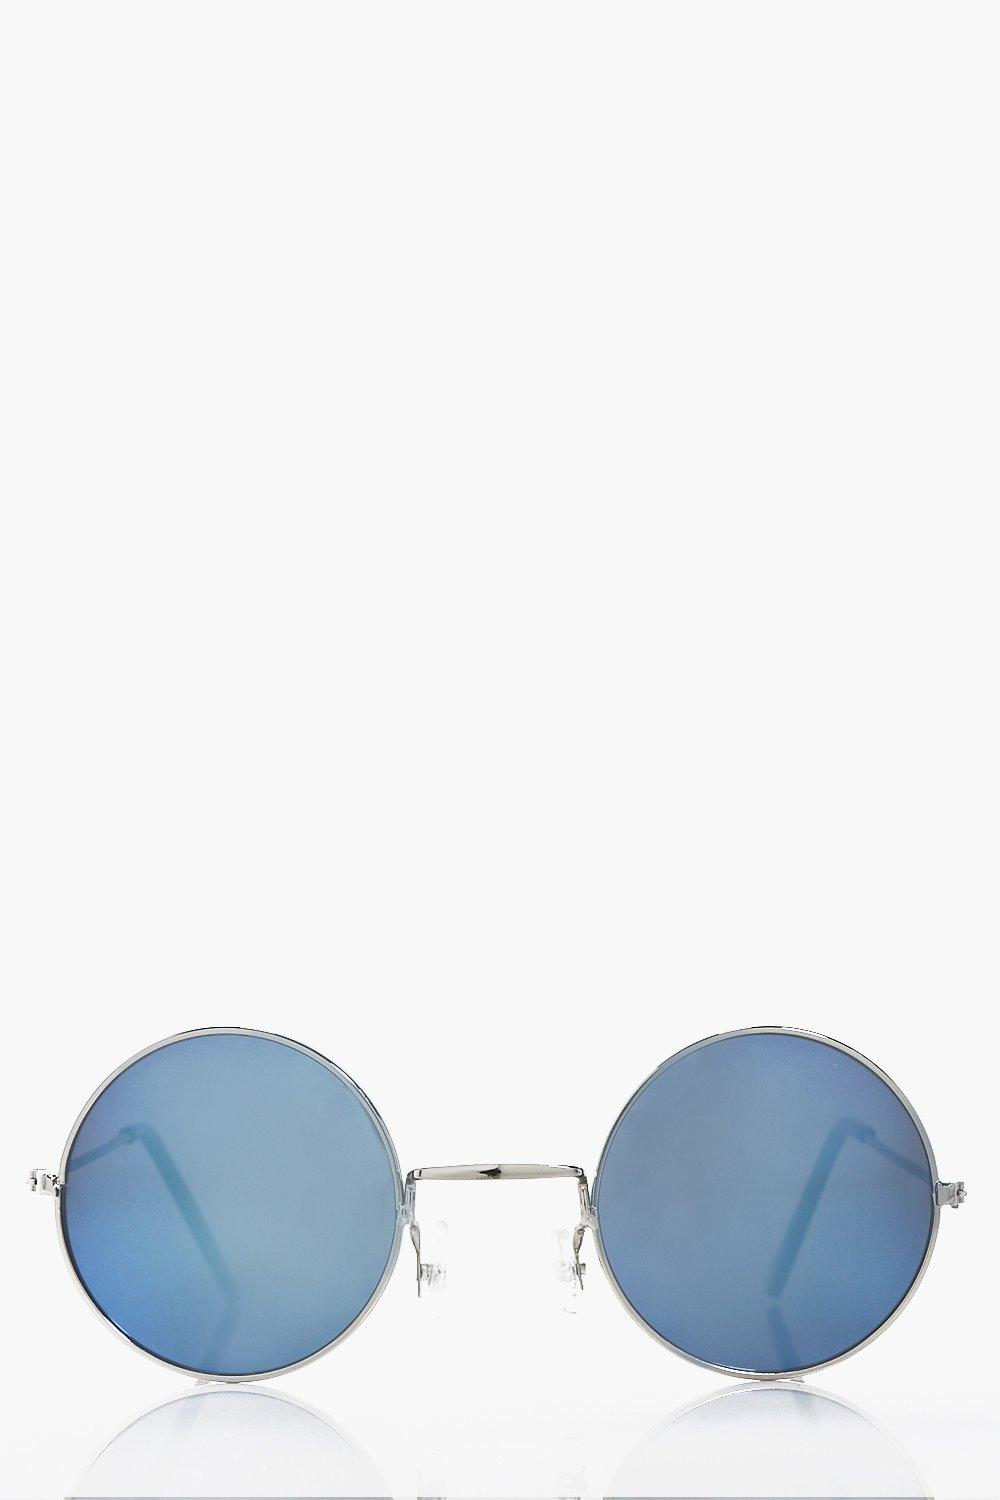 Silver Frame Round Sunglasses with Blue Lens